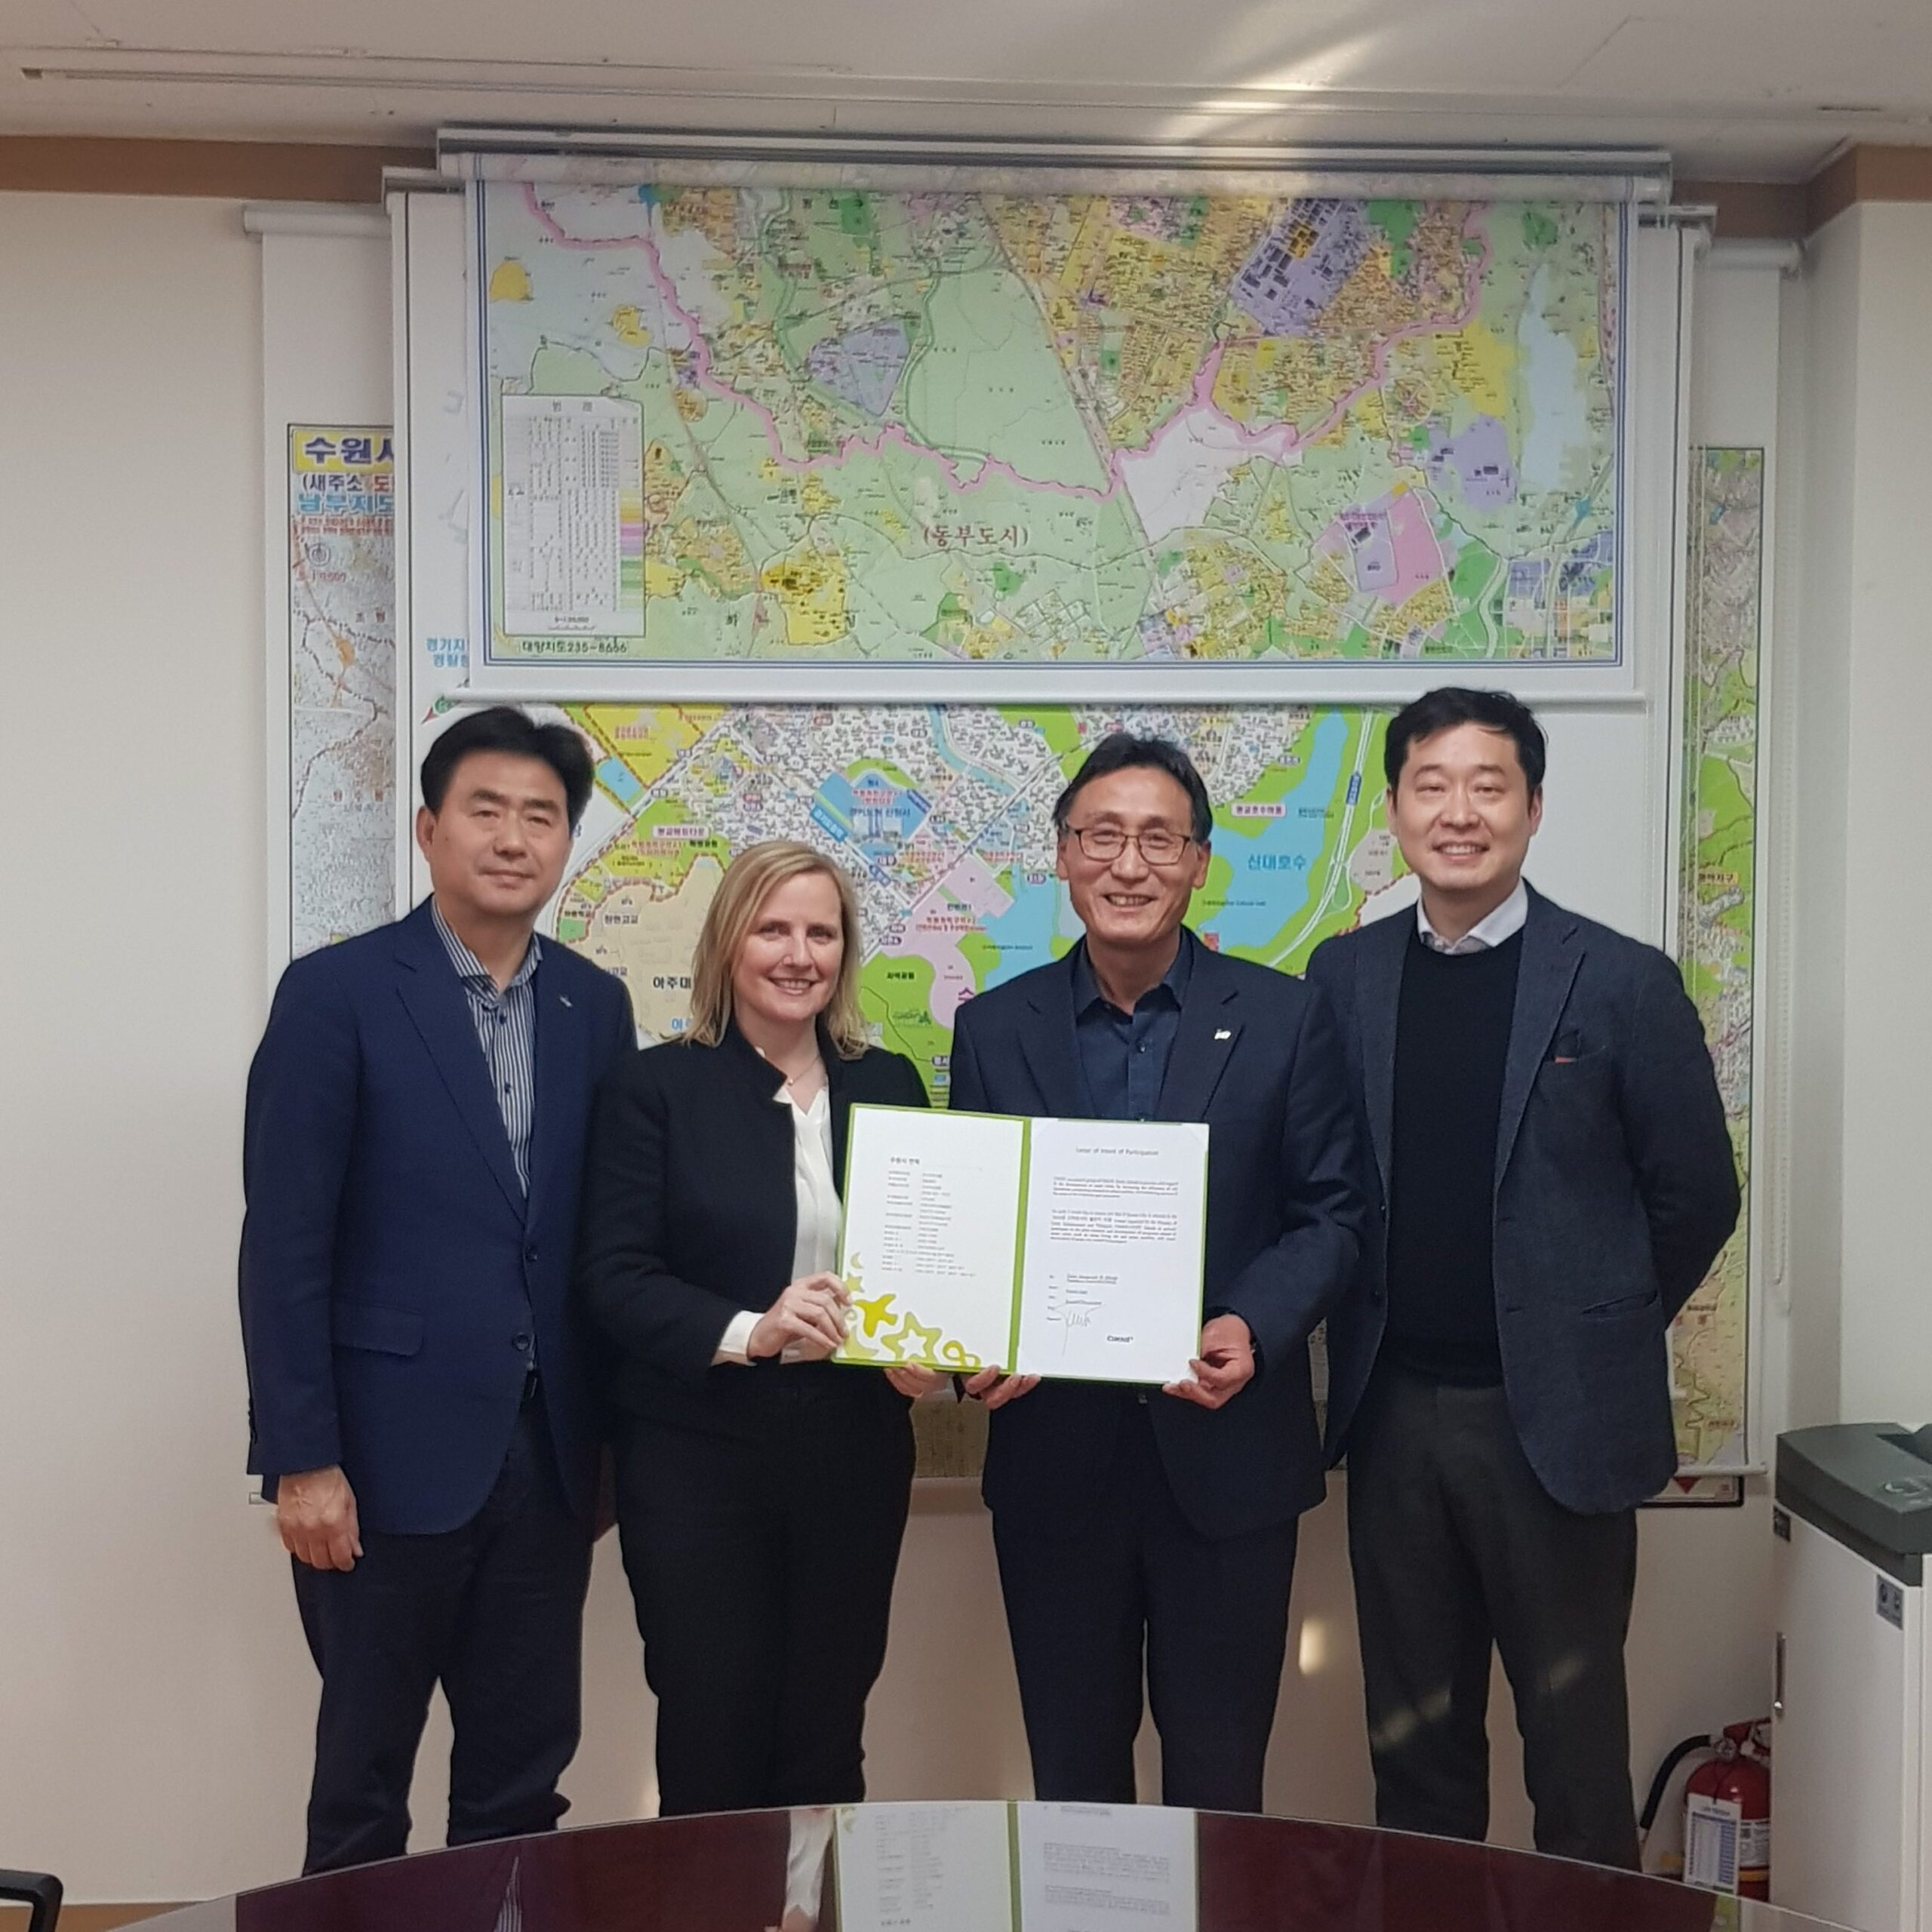 CENIT signs Letter of Intent in South Korea